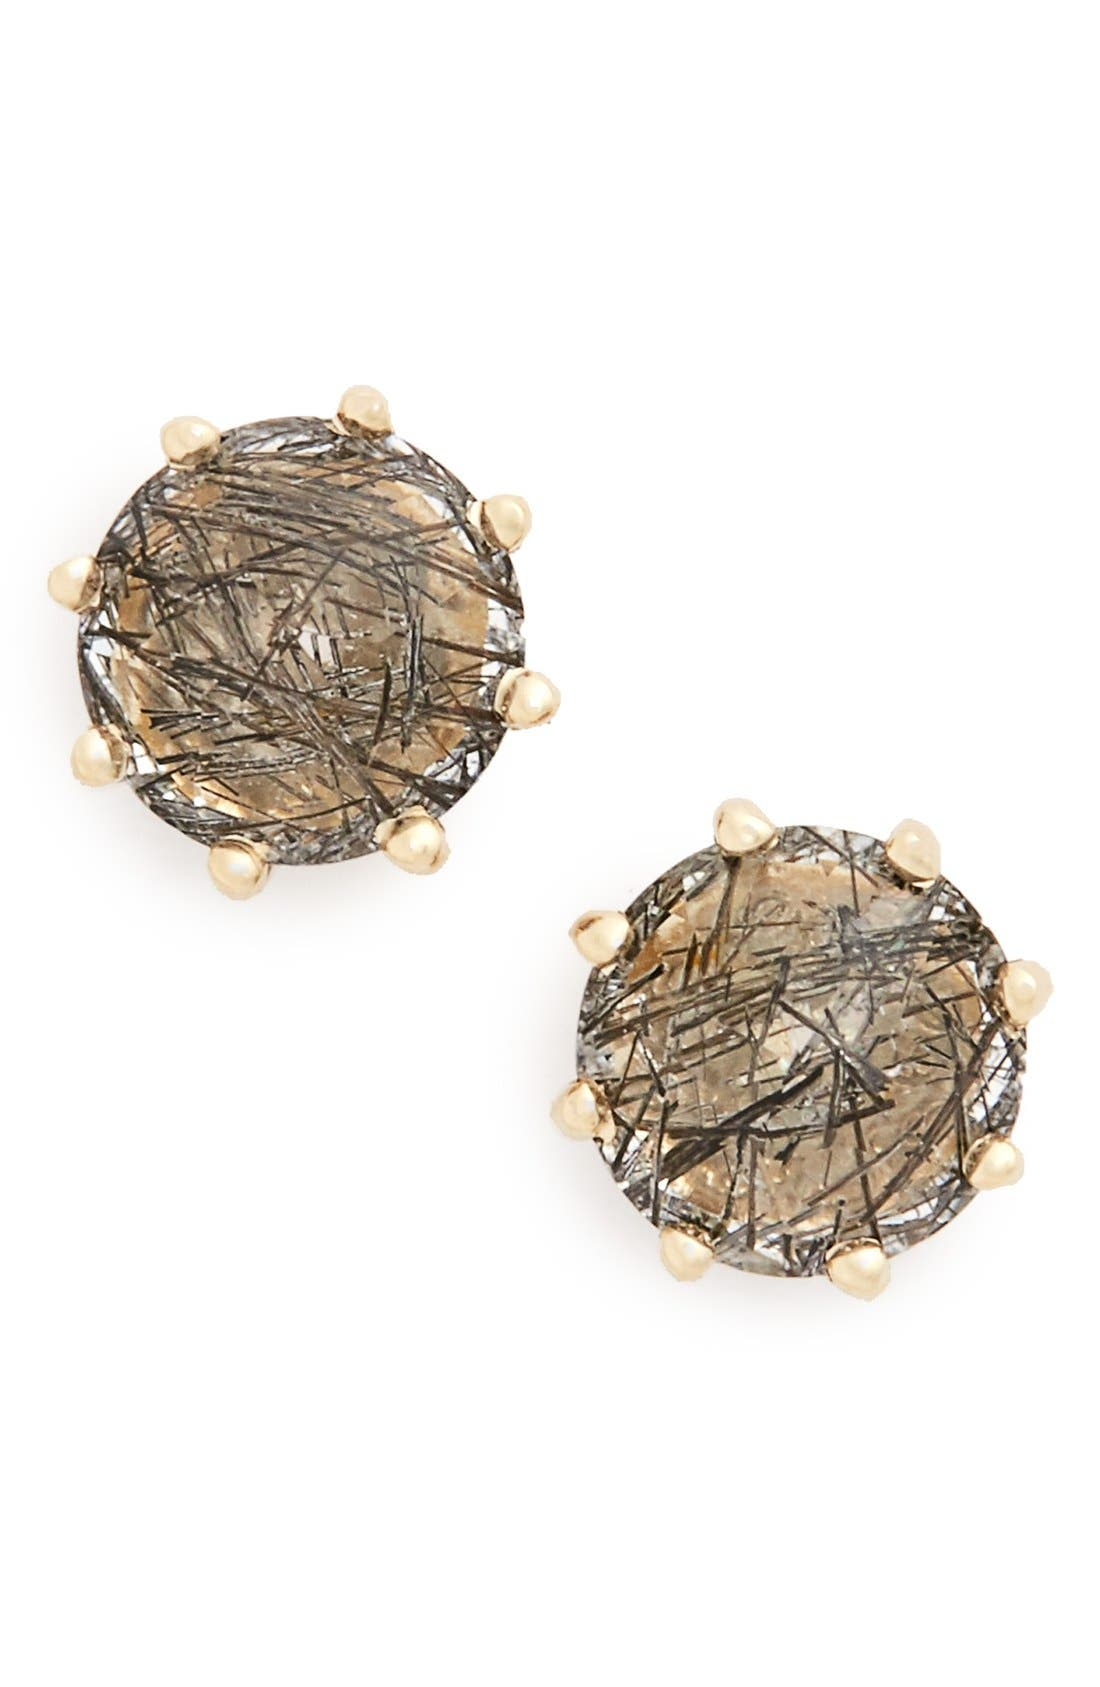 'Eleanor' Black Rutilated Quartz Stud Earrings,                             Main thumbnail 1, color,                             Yellow/ Gold/ Black